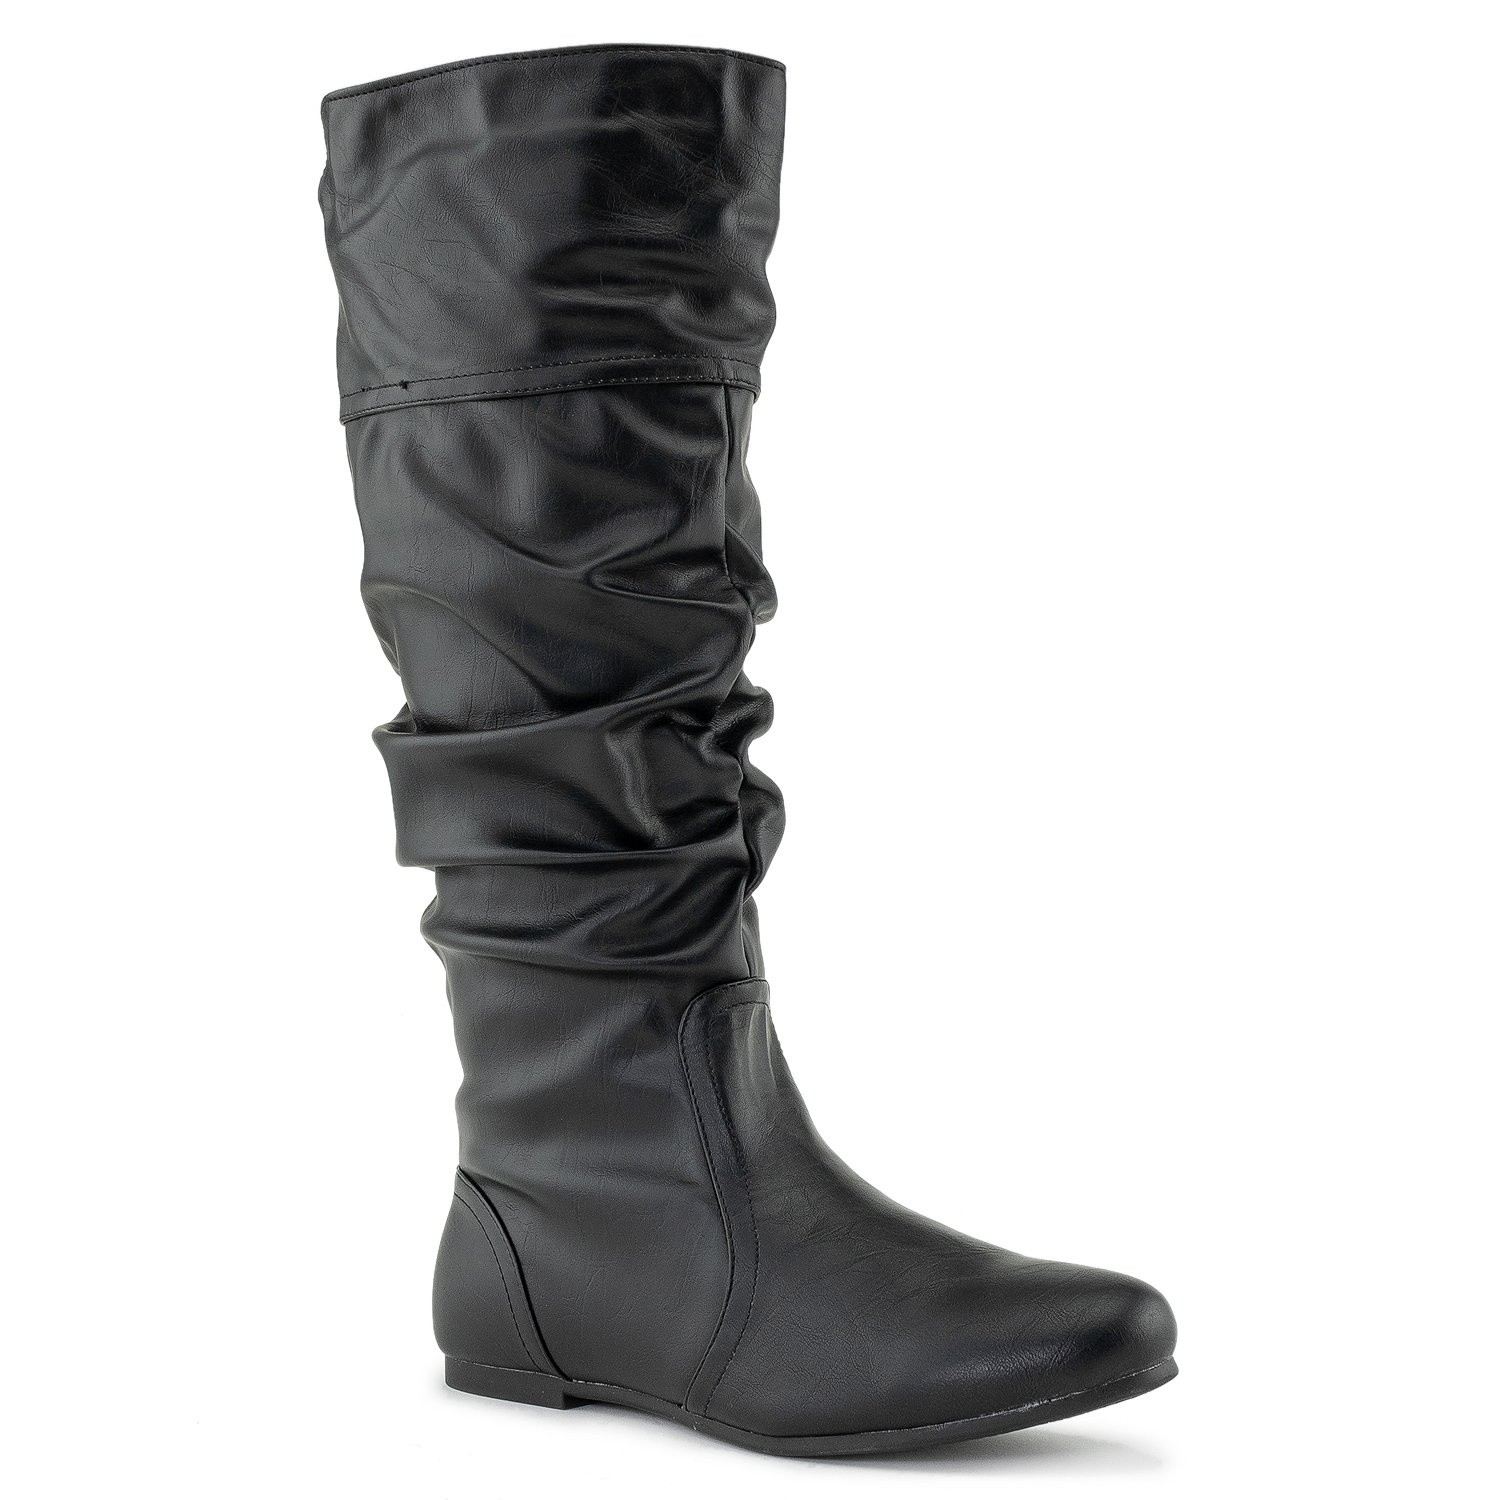 RF ROOM OF FASHION Touched-11 Boots (Black PU Size 9)